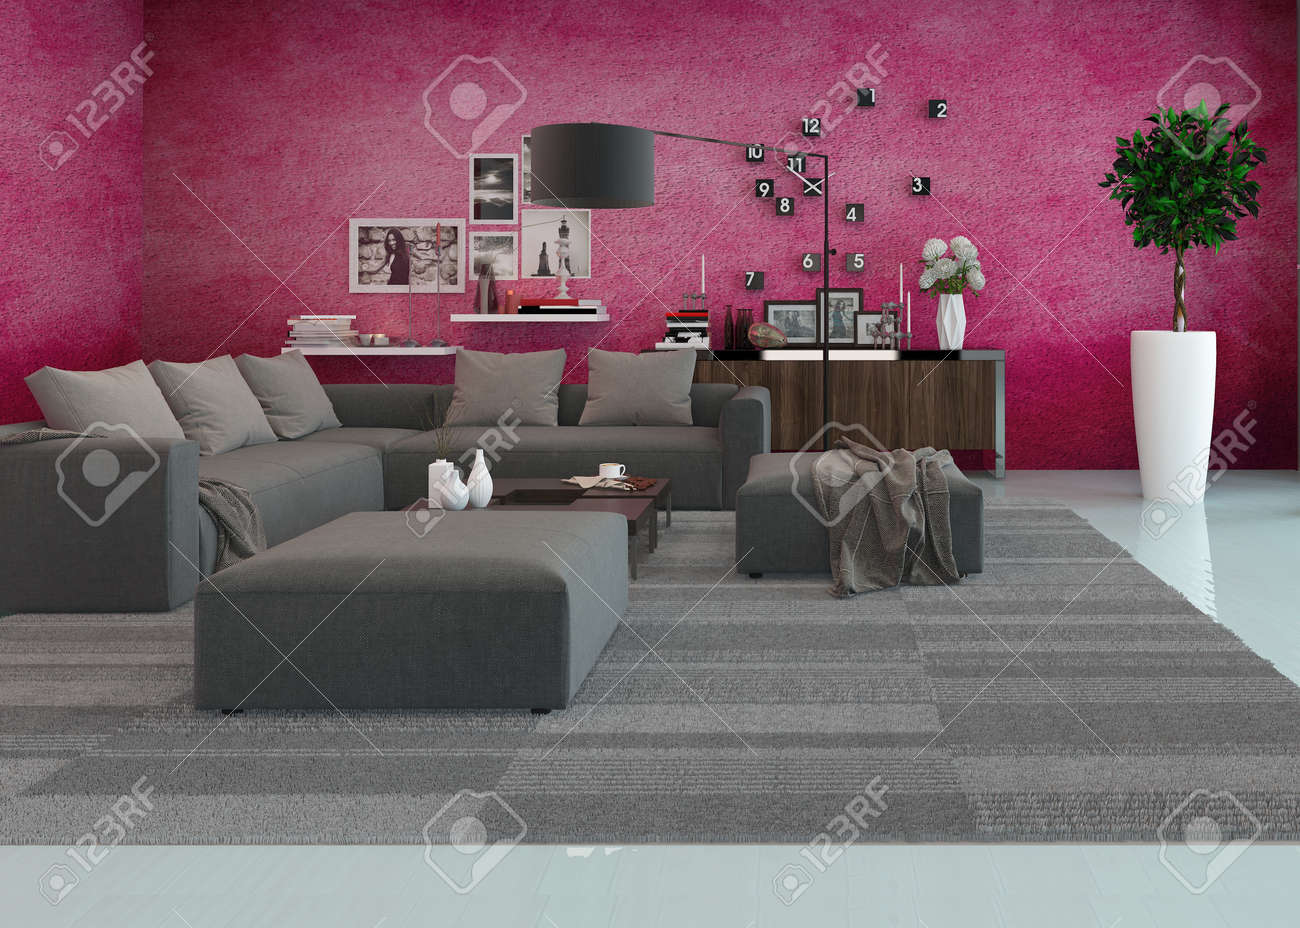 Modern Living Room Interior With A Comfortable Upholstered Lounge Suite Houseplants An Overlay Parquet